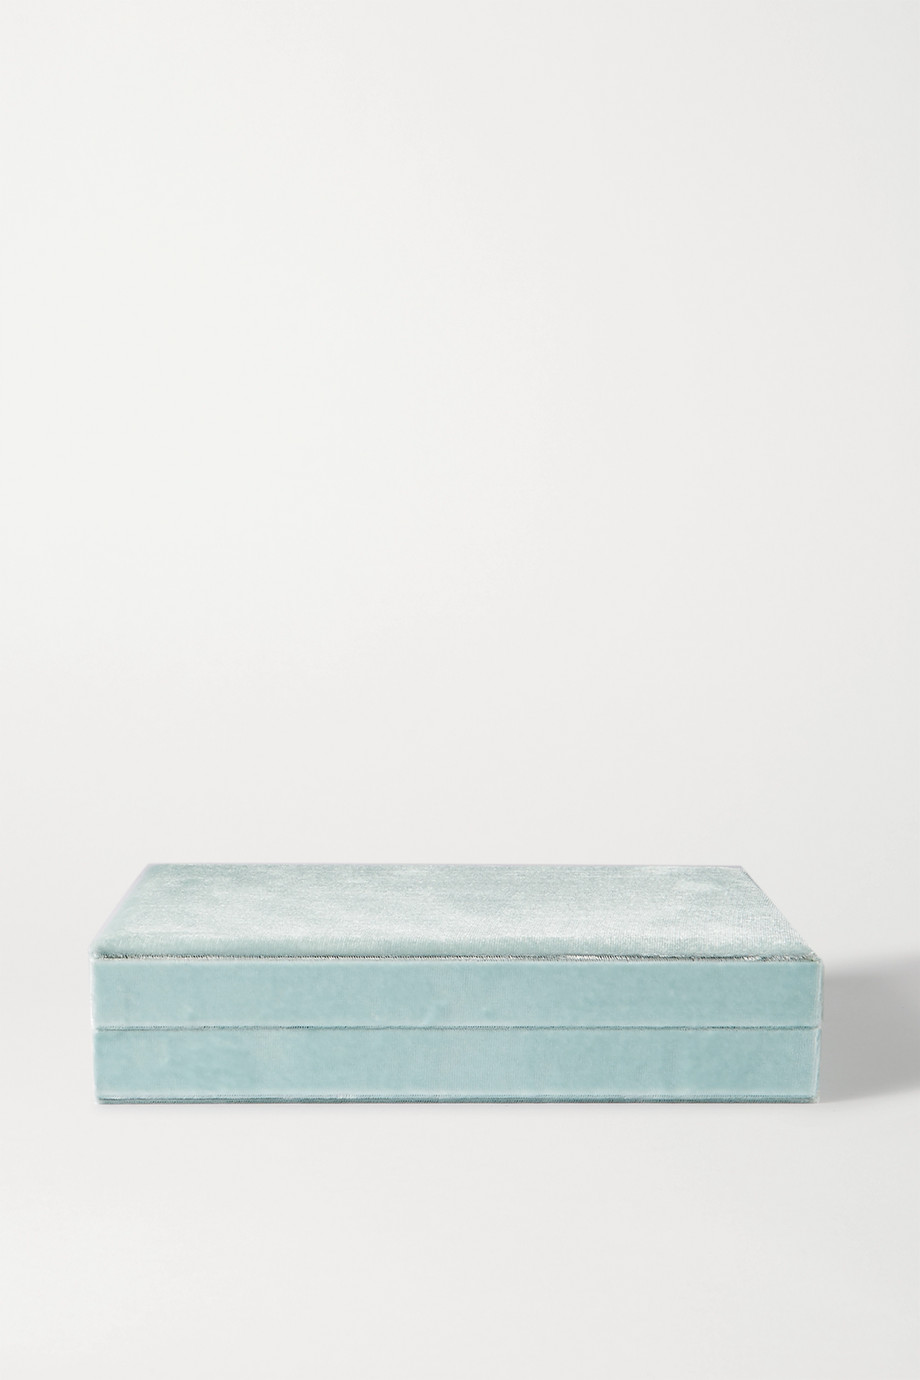 Sophie Bille Brahe Large velvet jewelry box